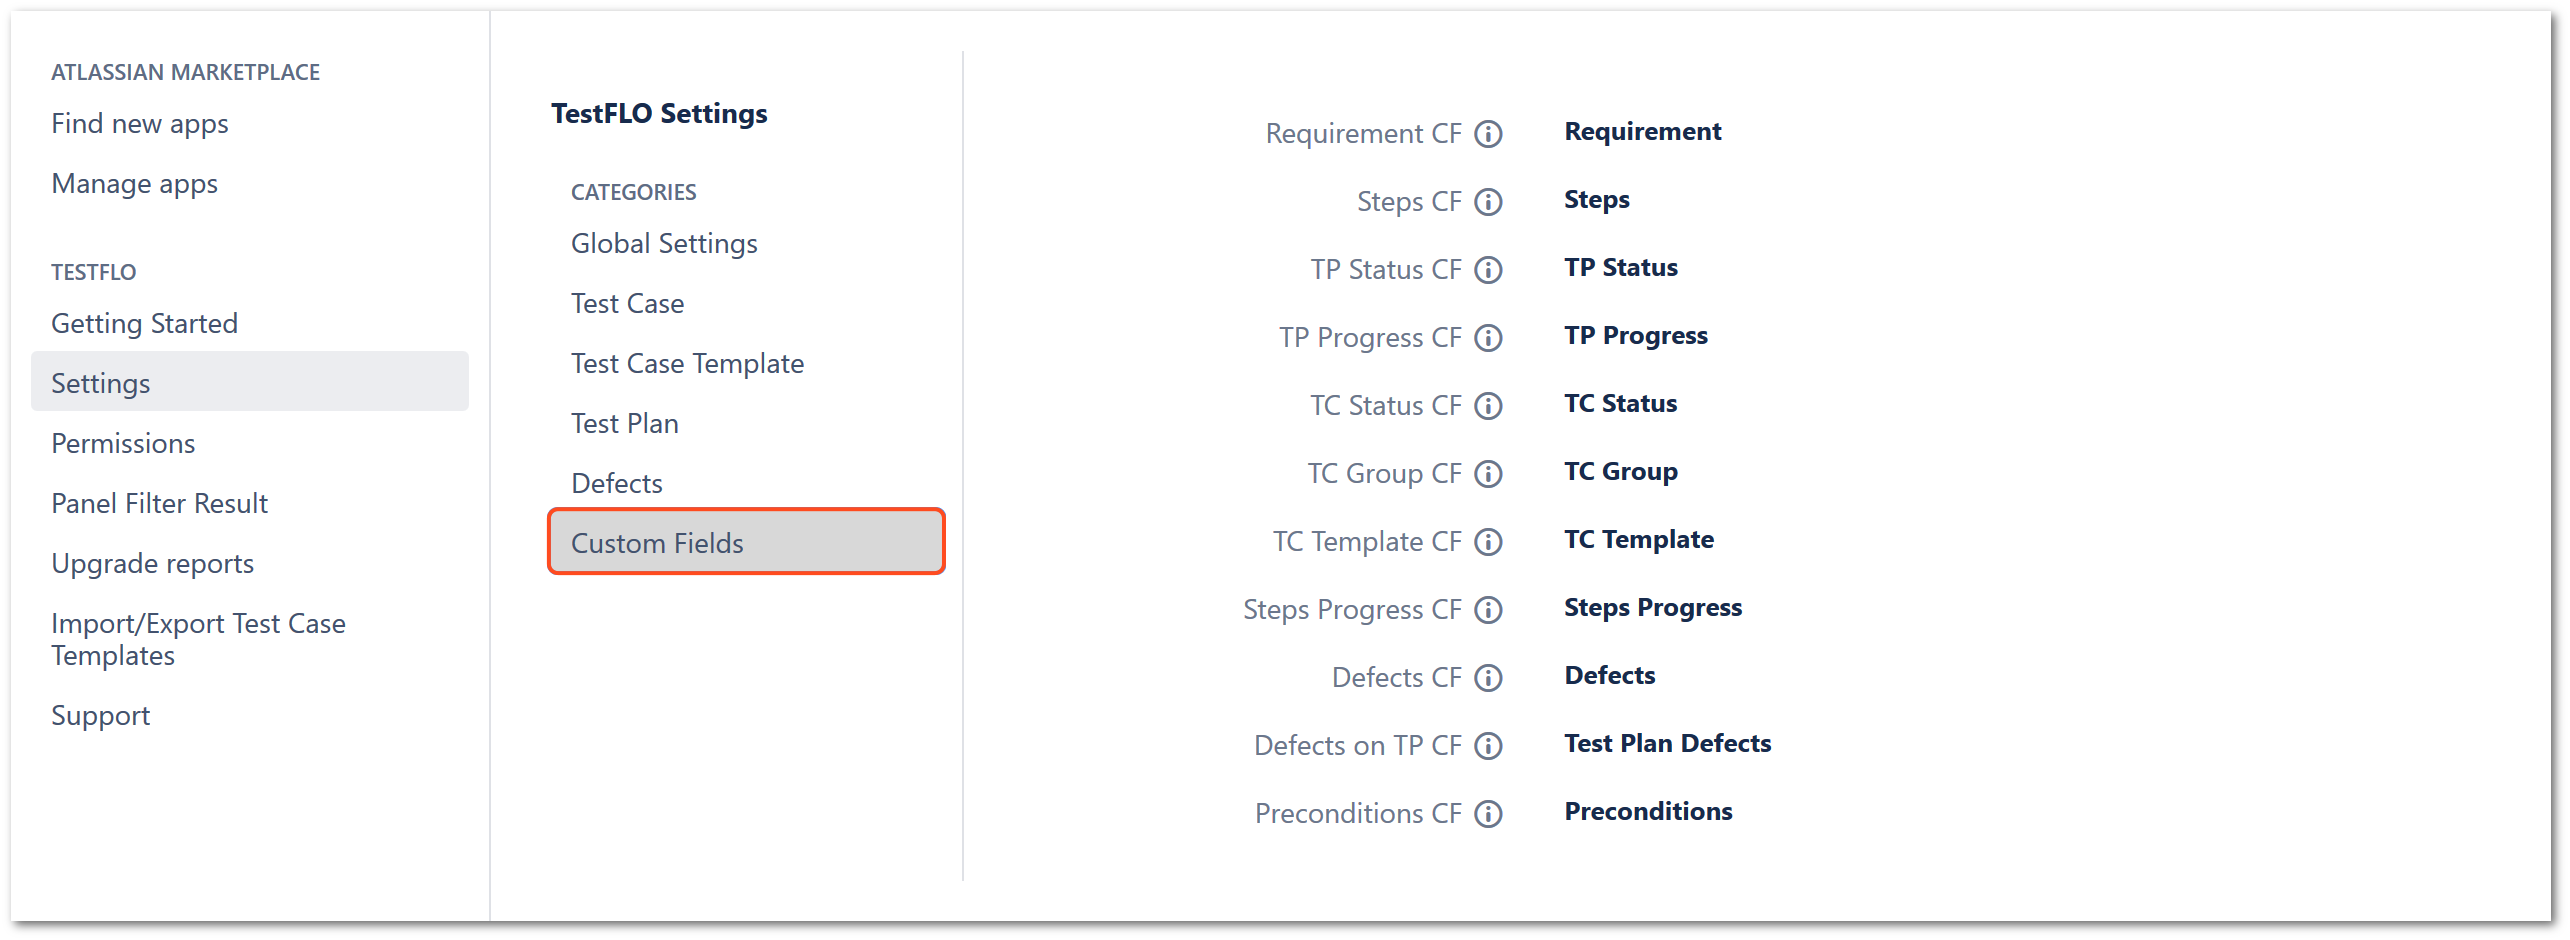 Custom Fields section in TestFLO settings